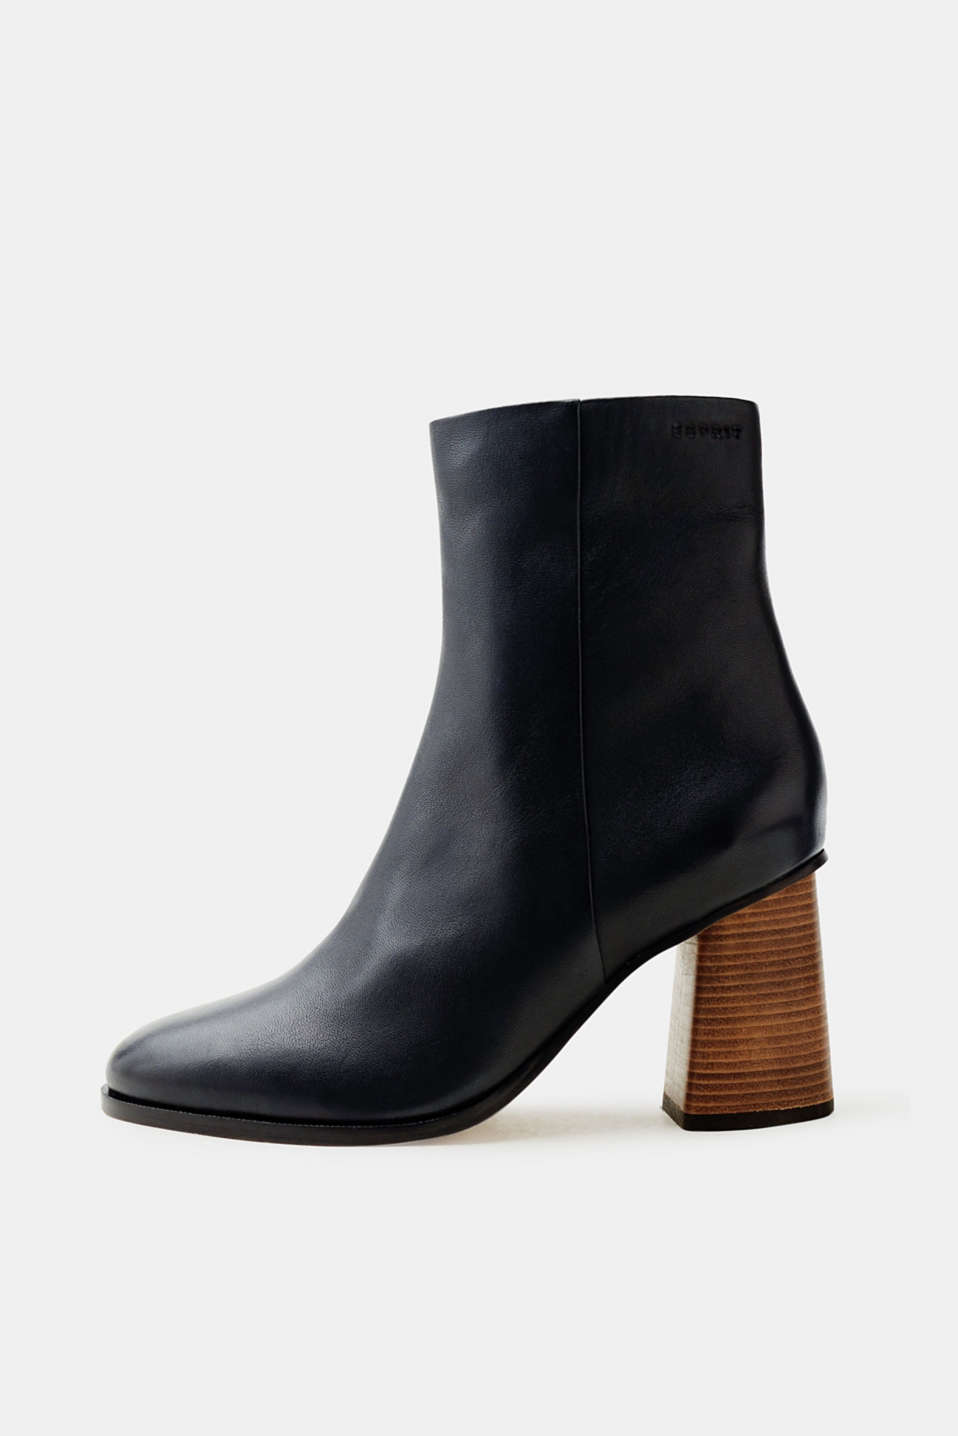 Esprit - Leather ankle boots with a wood-effect heel